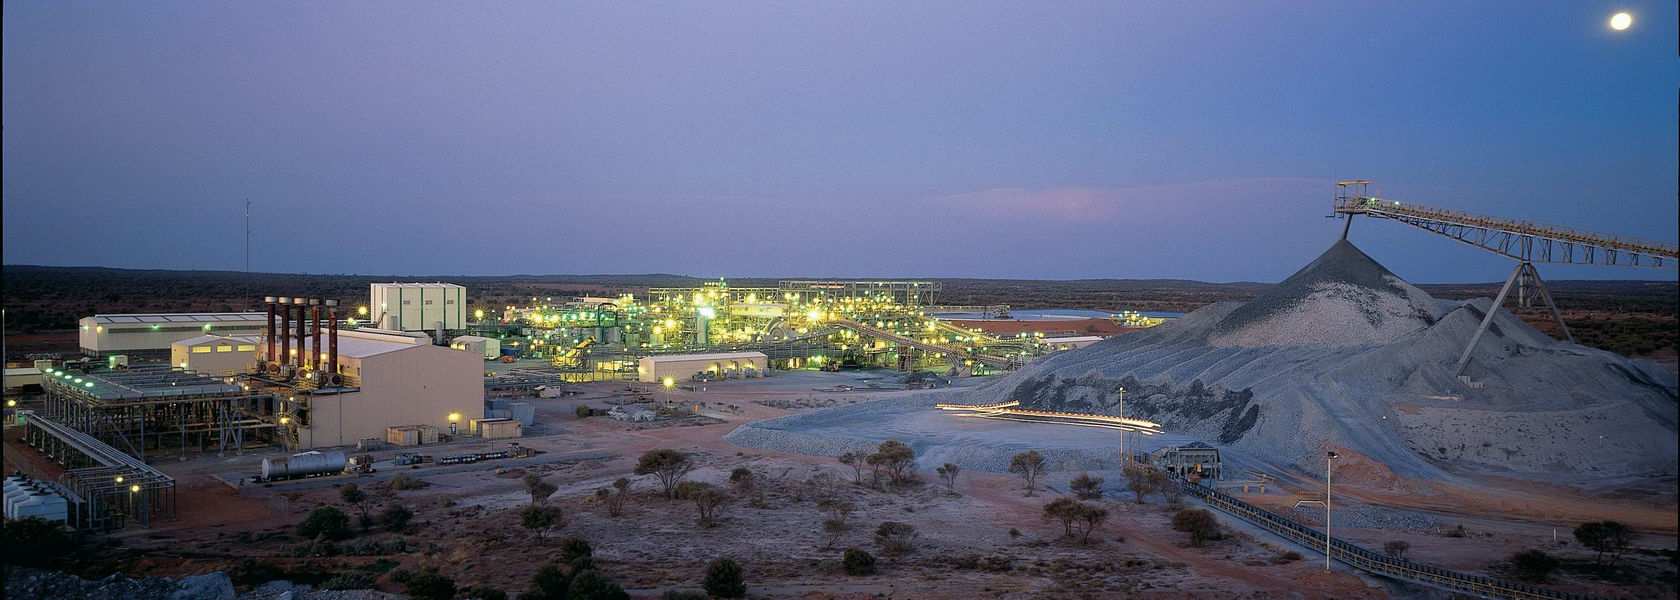 Alliance, BHP extend contract for FIFO services